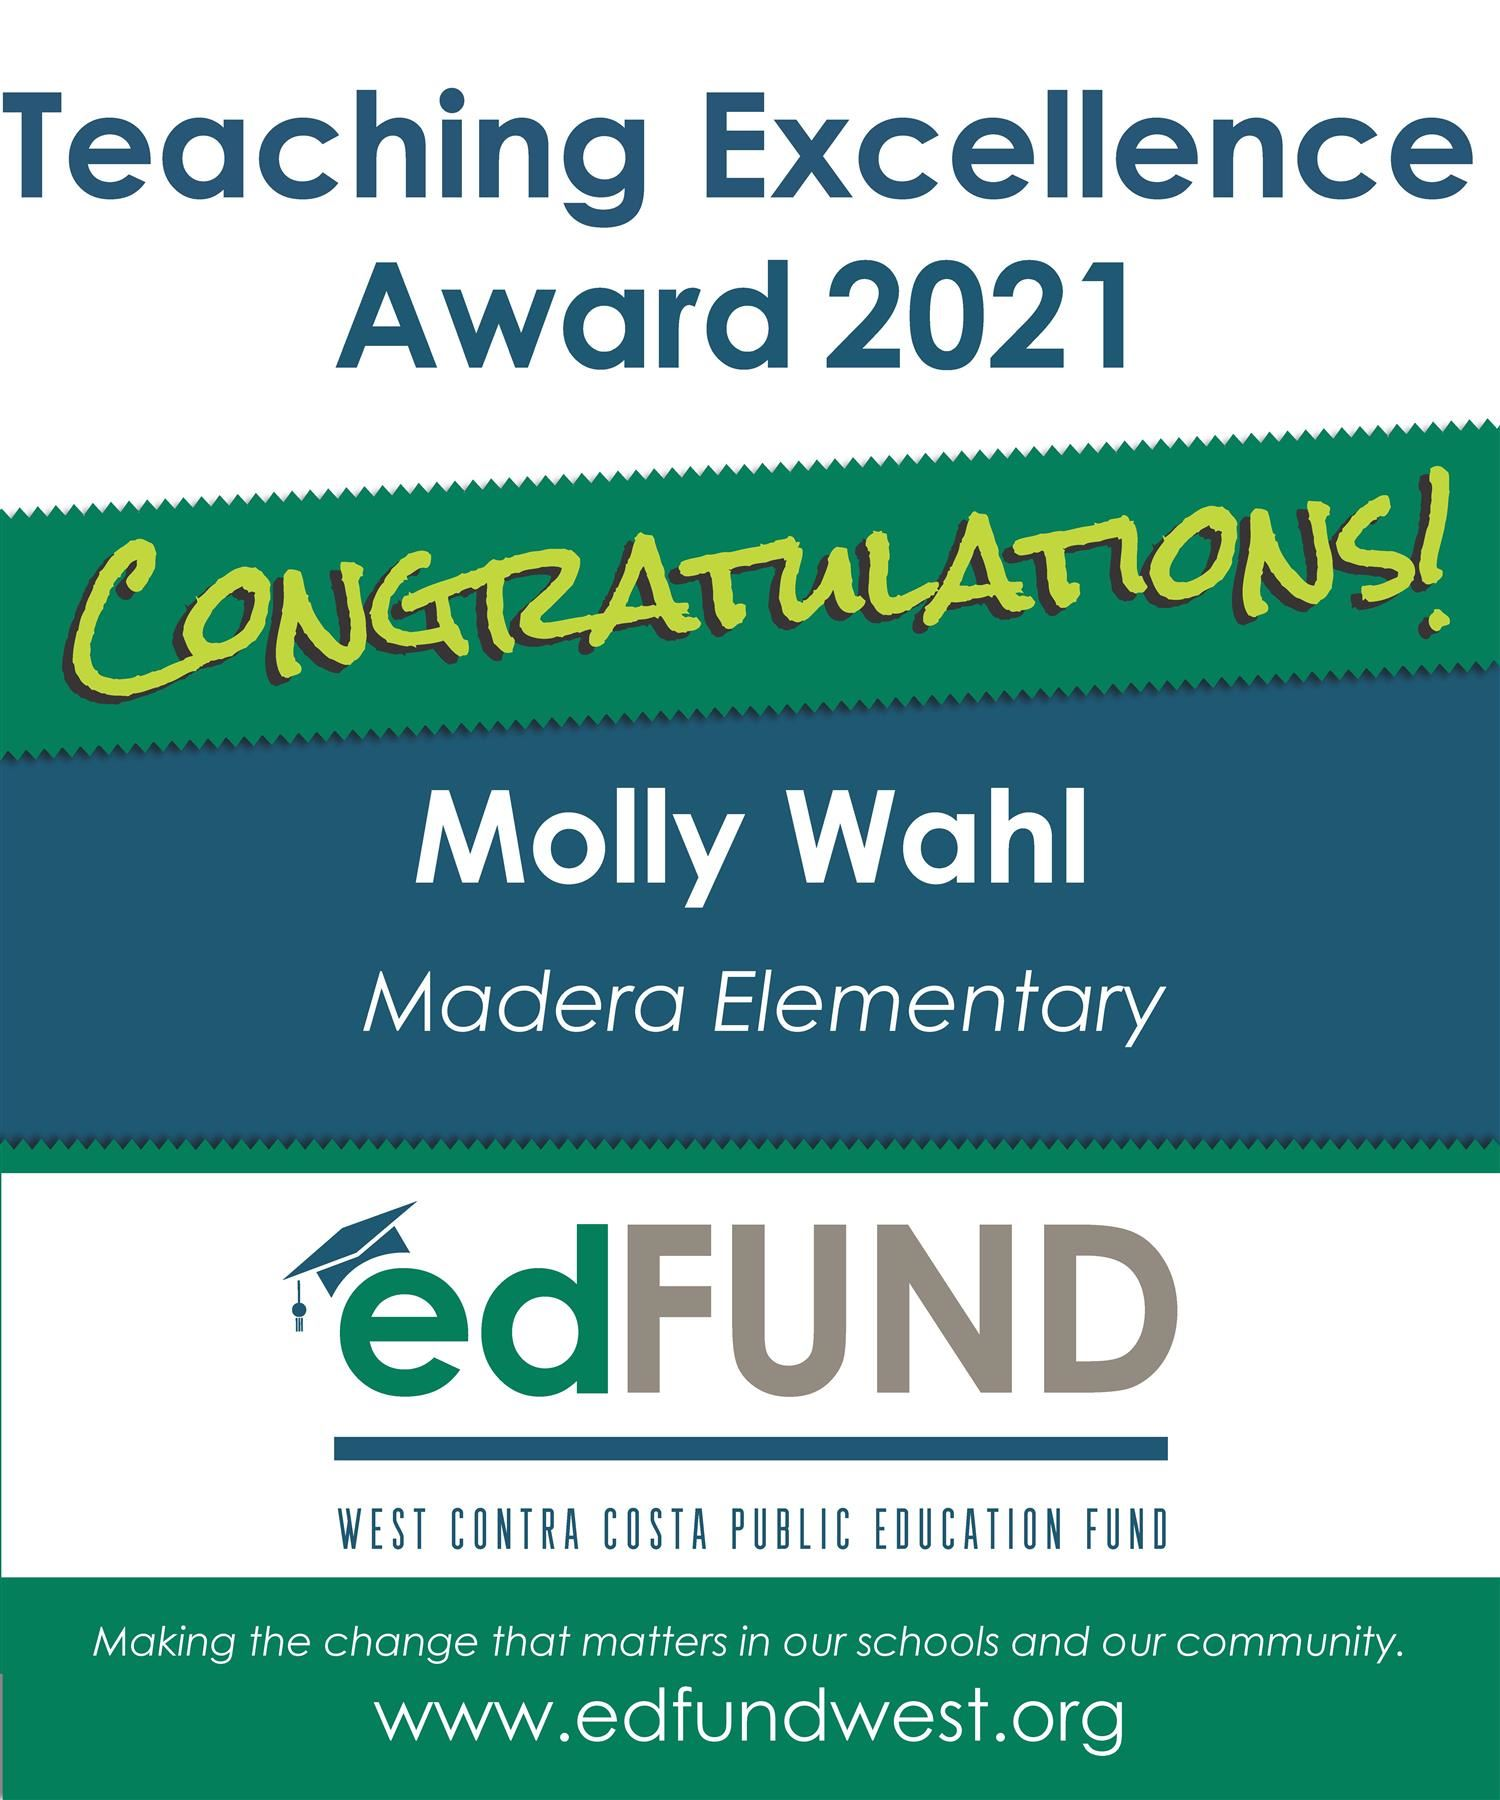 Madera Elementary School Molly Wahl Teaching Excellence Banner